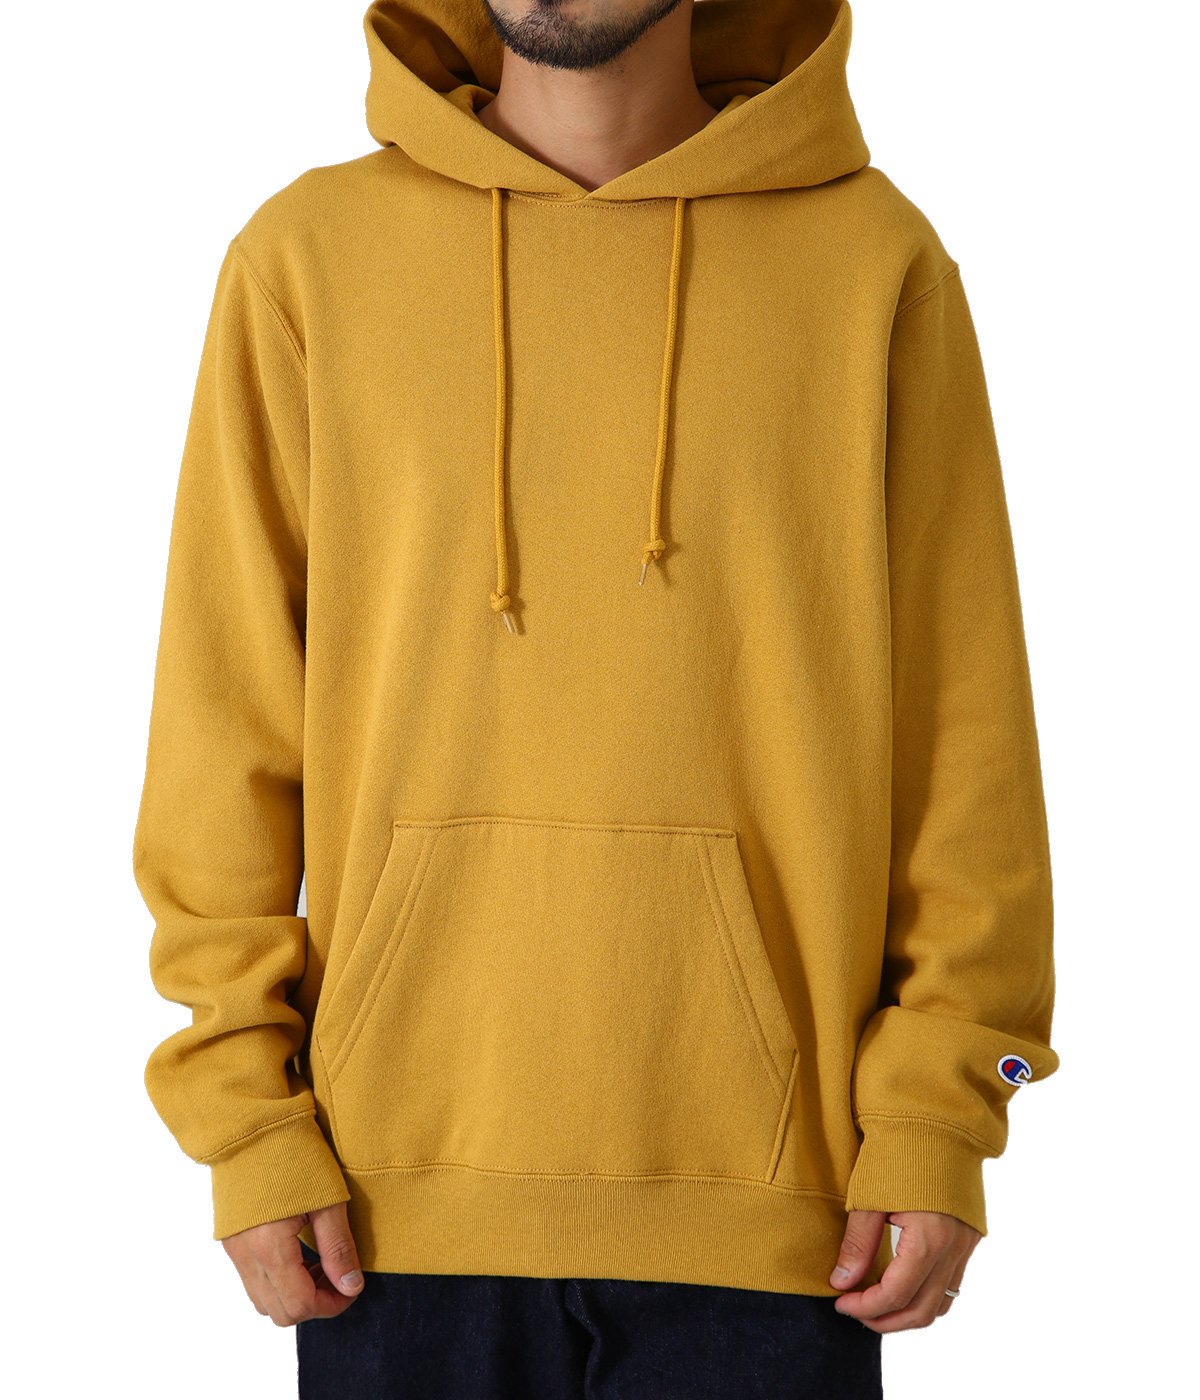 9oz PULL OVER HOODED SWEAT SHIRT